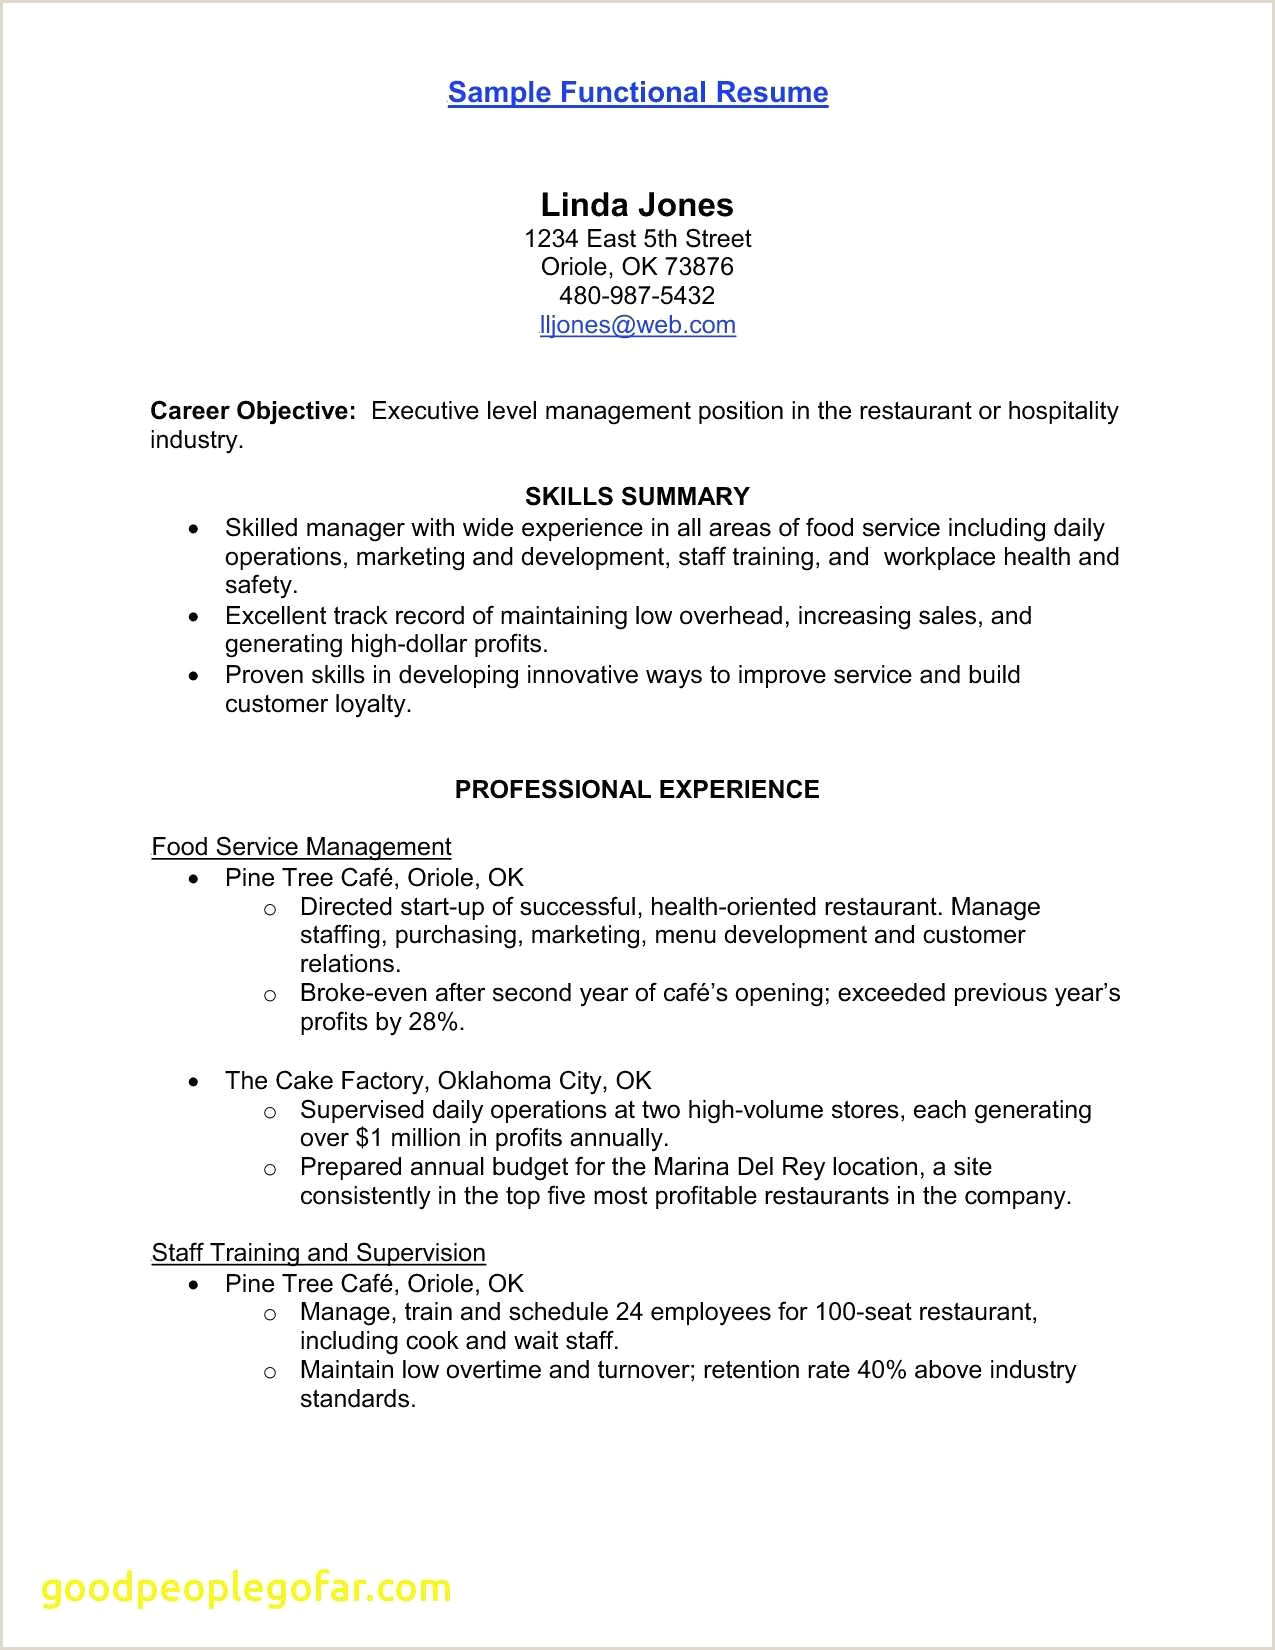 Sales Objectives for Resume Best Resume with Knowledge